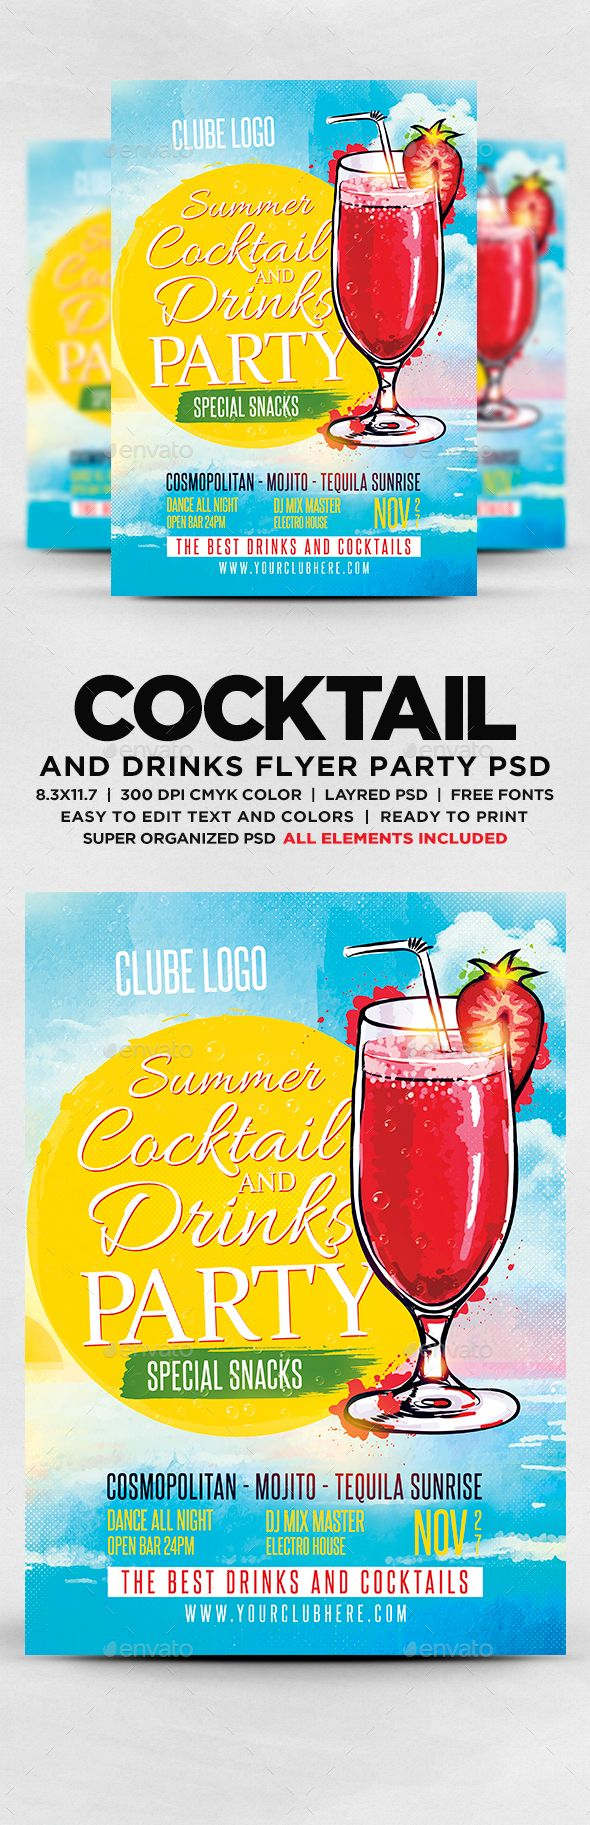 Summer Cocktail And Drinks Party Flyer Template PSD